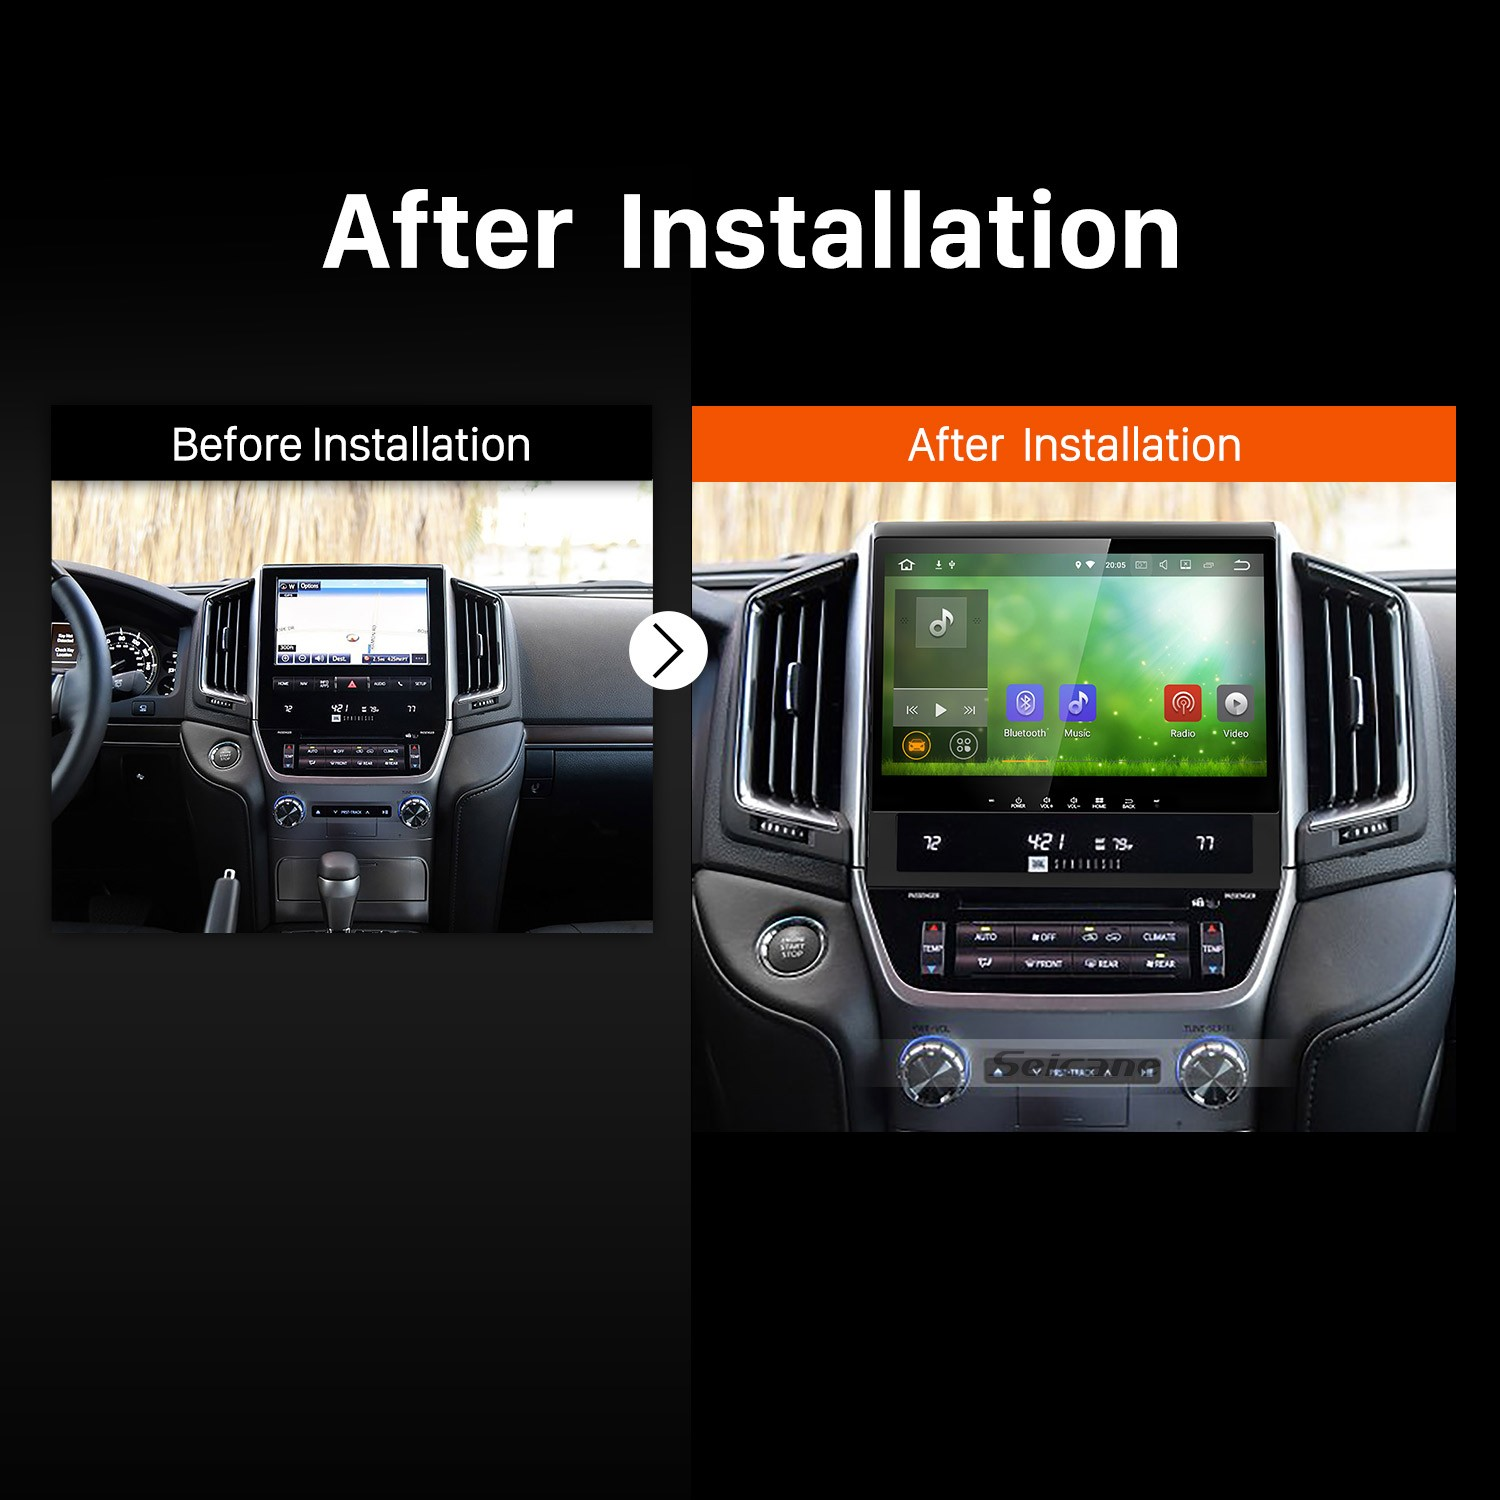 Toyota Land Cruiser Wiki >> How to Replace a 2016 Toyota Land cruiser 200 Bluetooth GPS Car Radio with Radio Audio Speakers ...